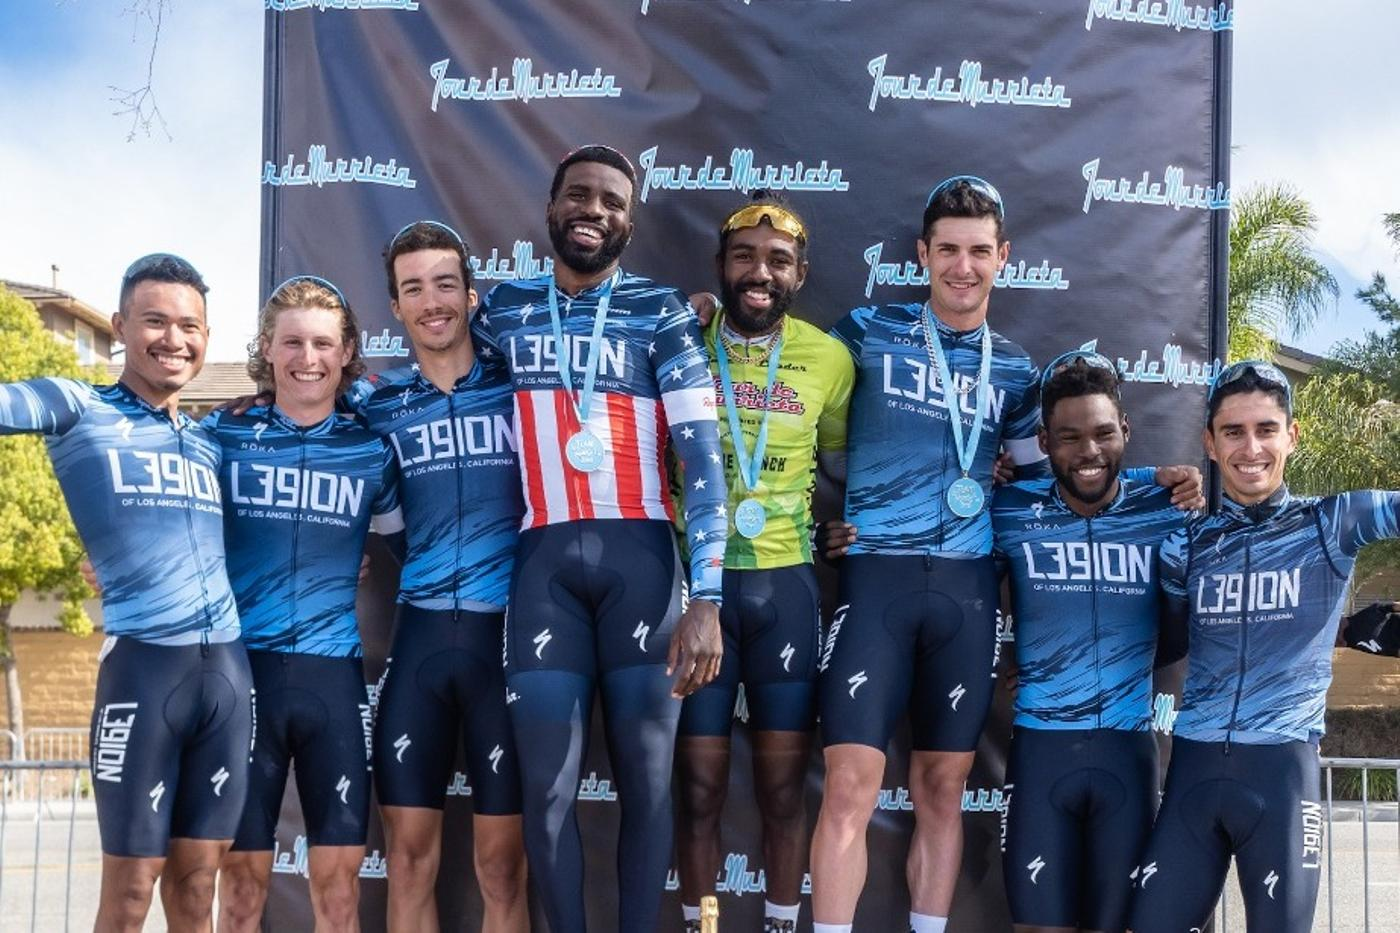 L39ION of Los Angeles: Pride of the People – Raised Over $50k to Help Bring Diversity to Cycling